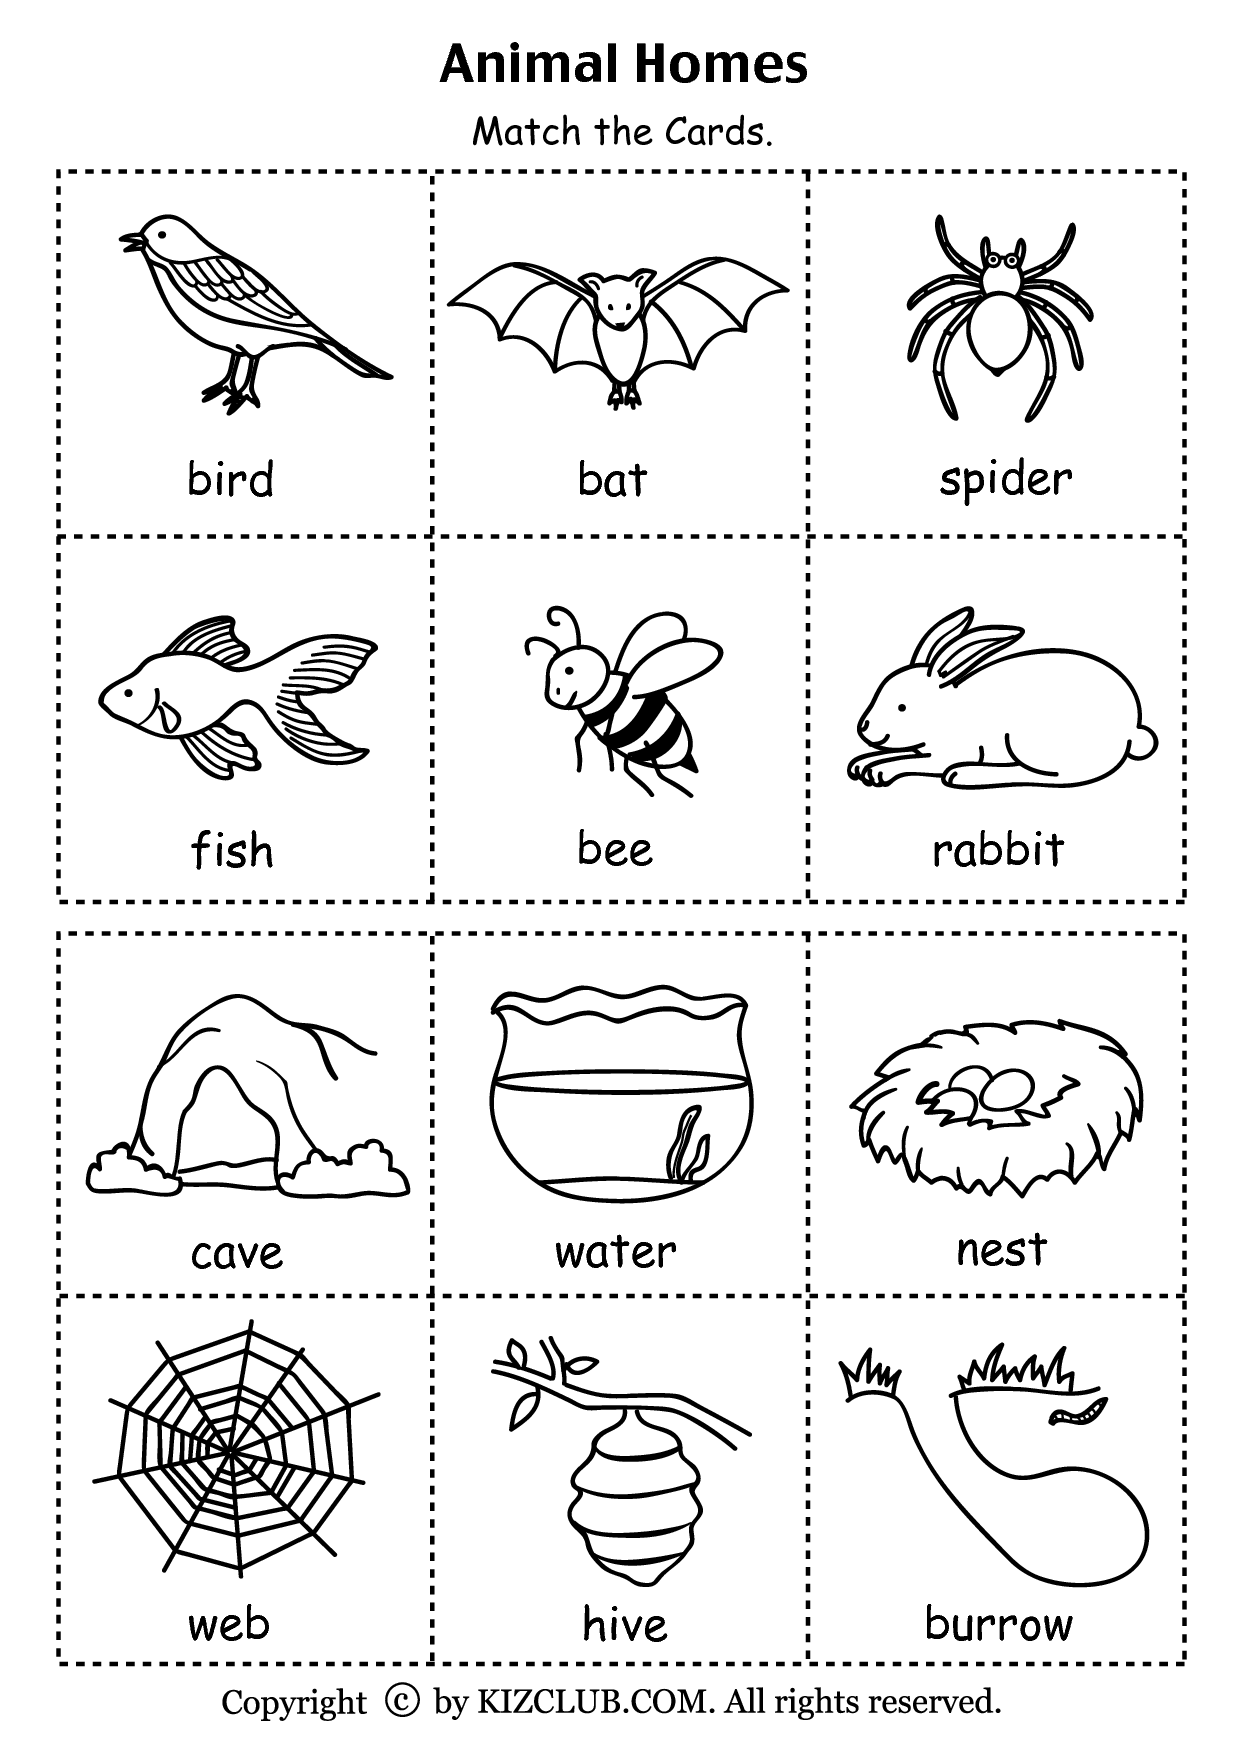 hight resolution of e7fd5cd0f7f52b7f5fcd16356481788f.jpg (1240×1754)   Preschool science